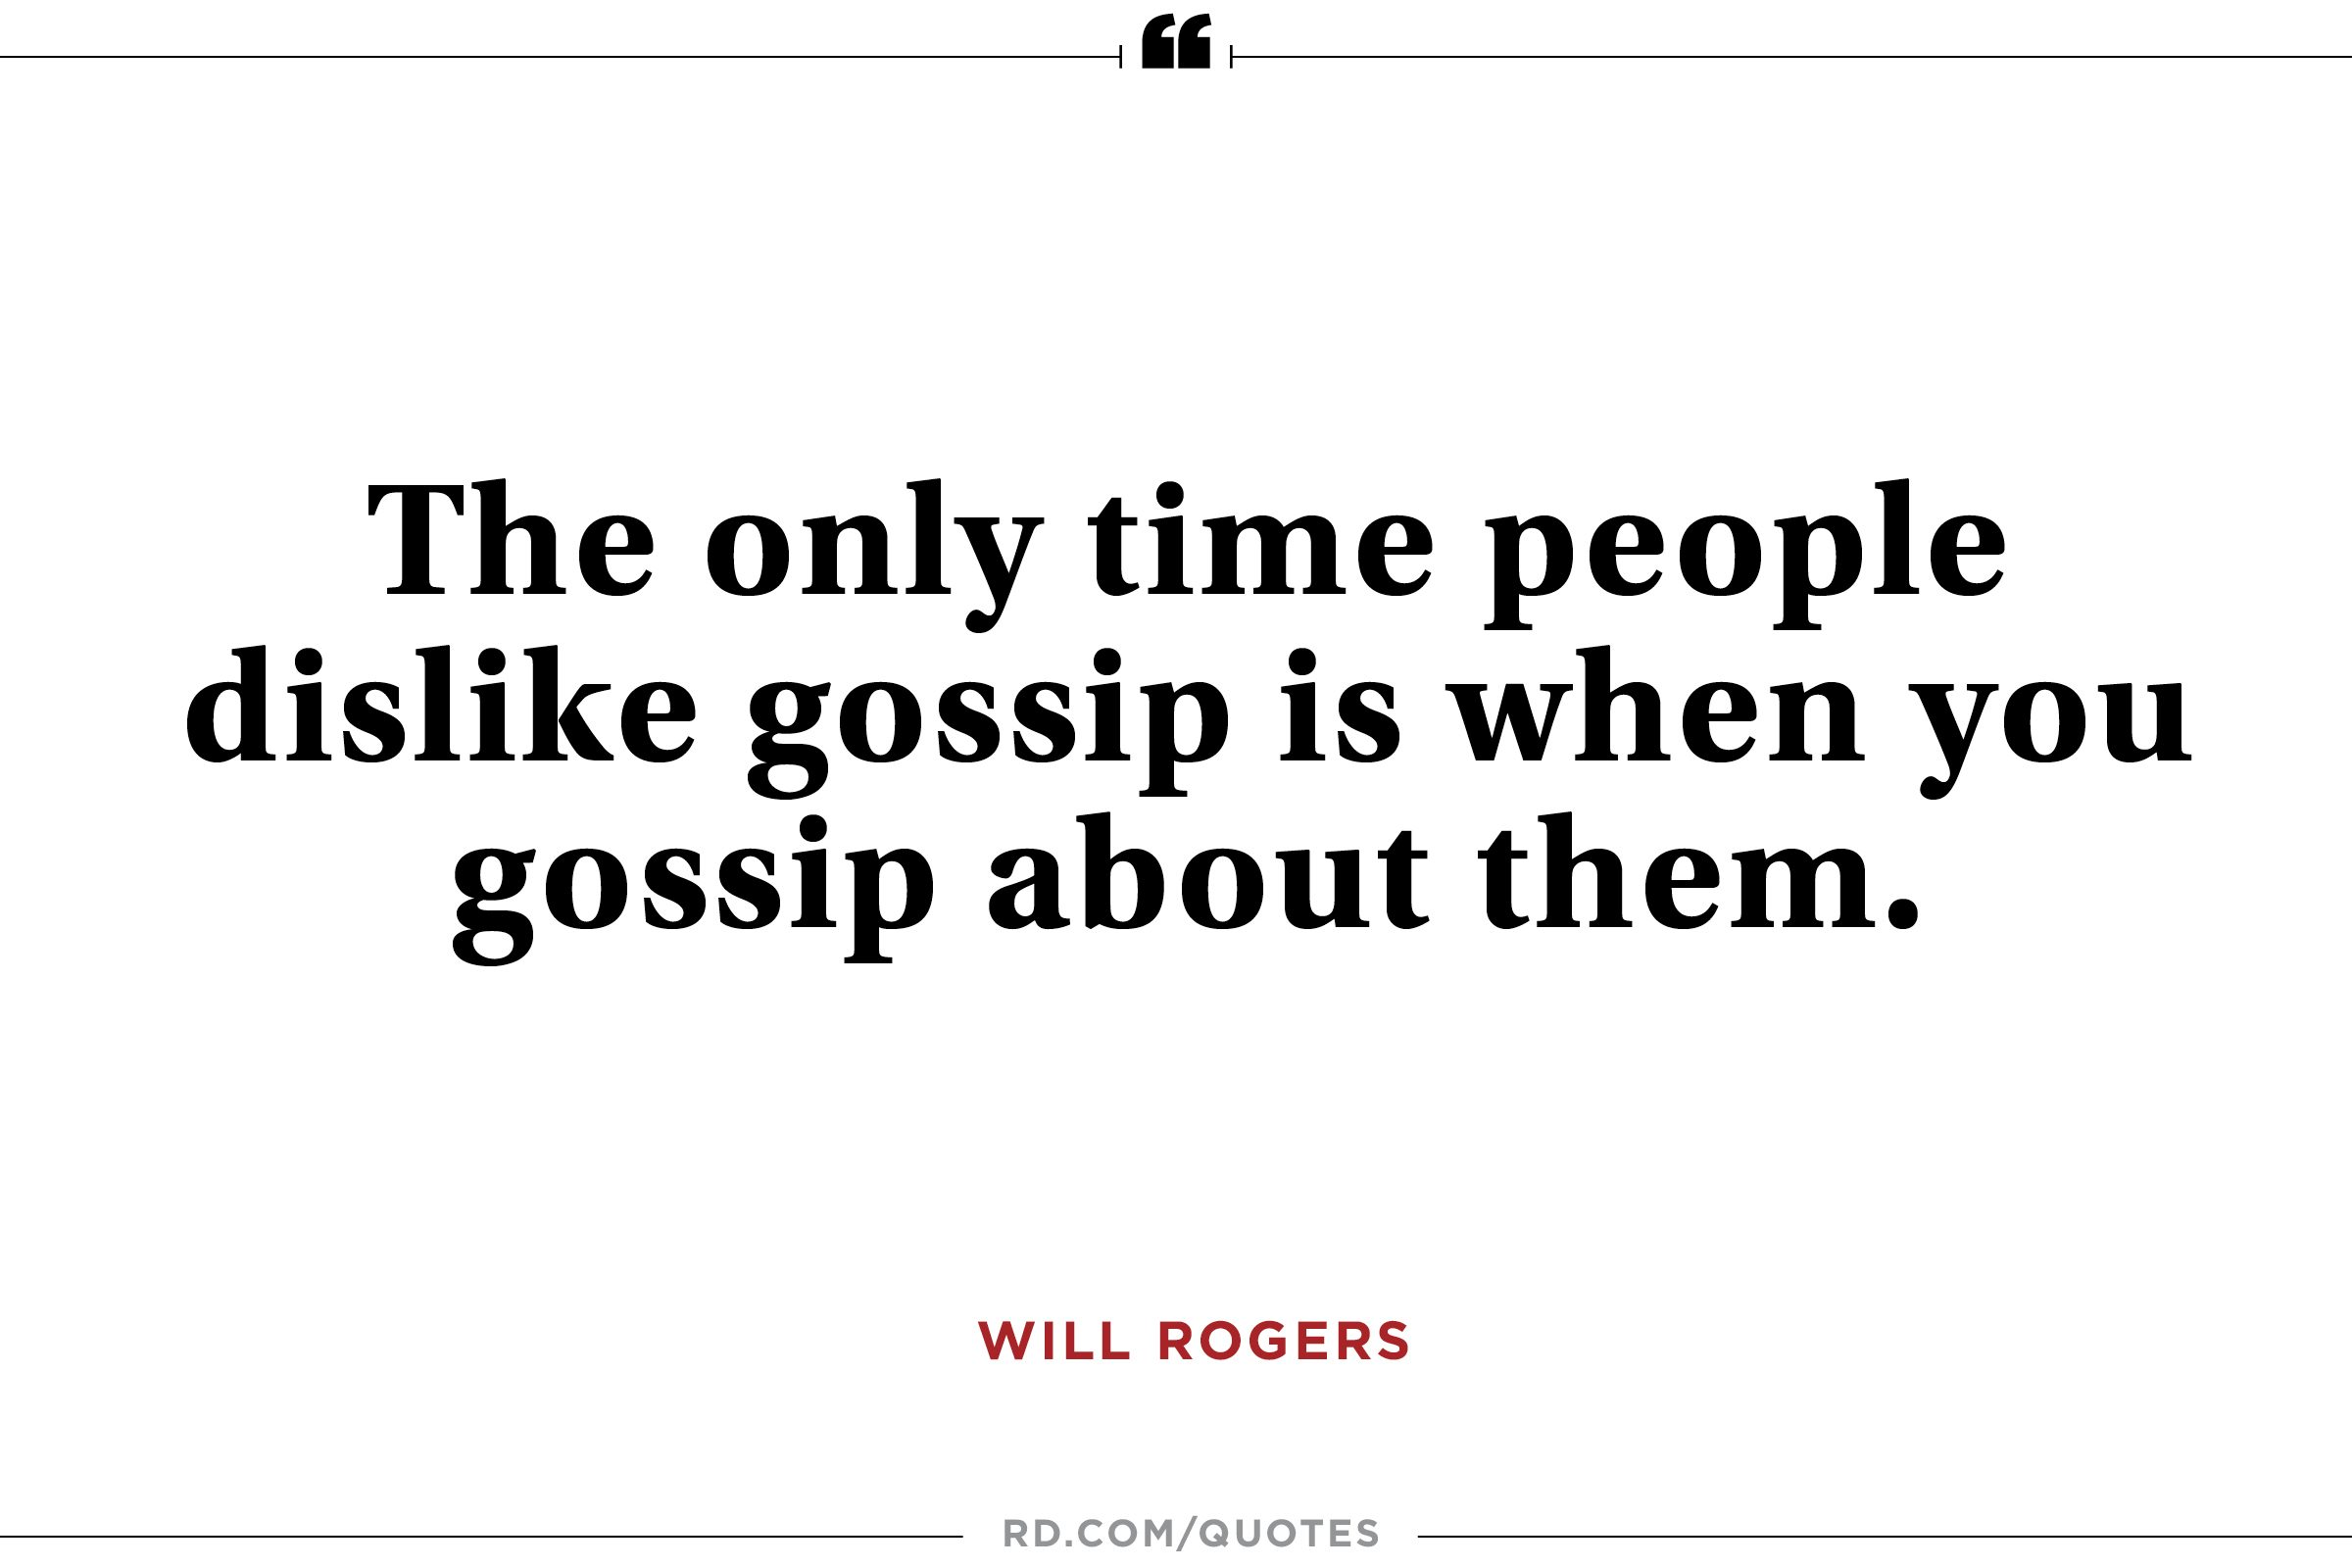 10 Wise Quotes From Will Rogers Readers Digest